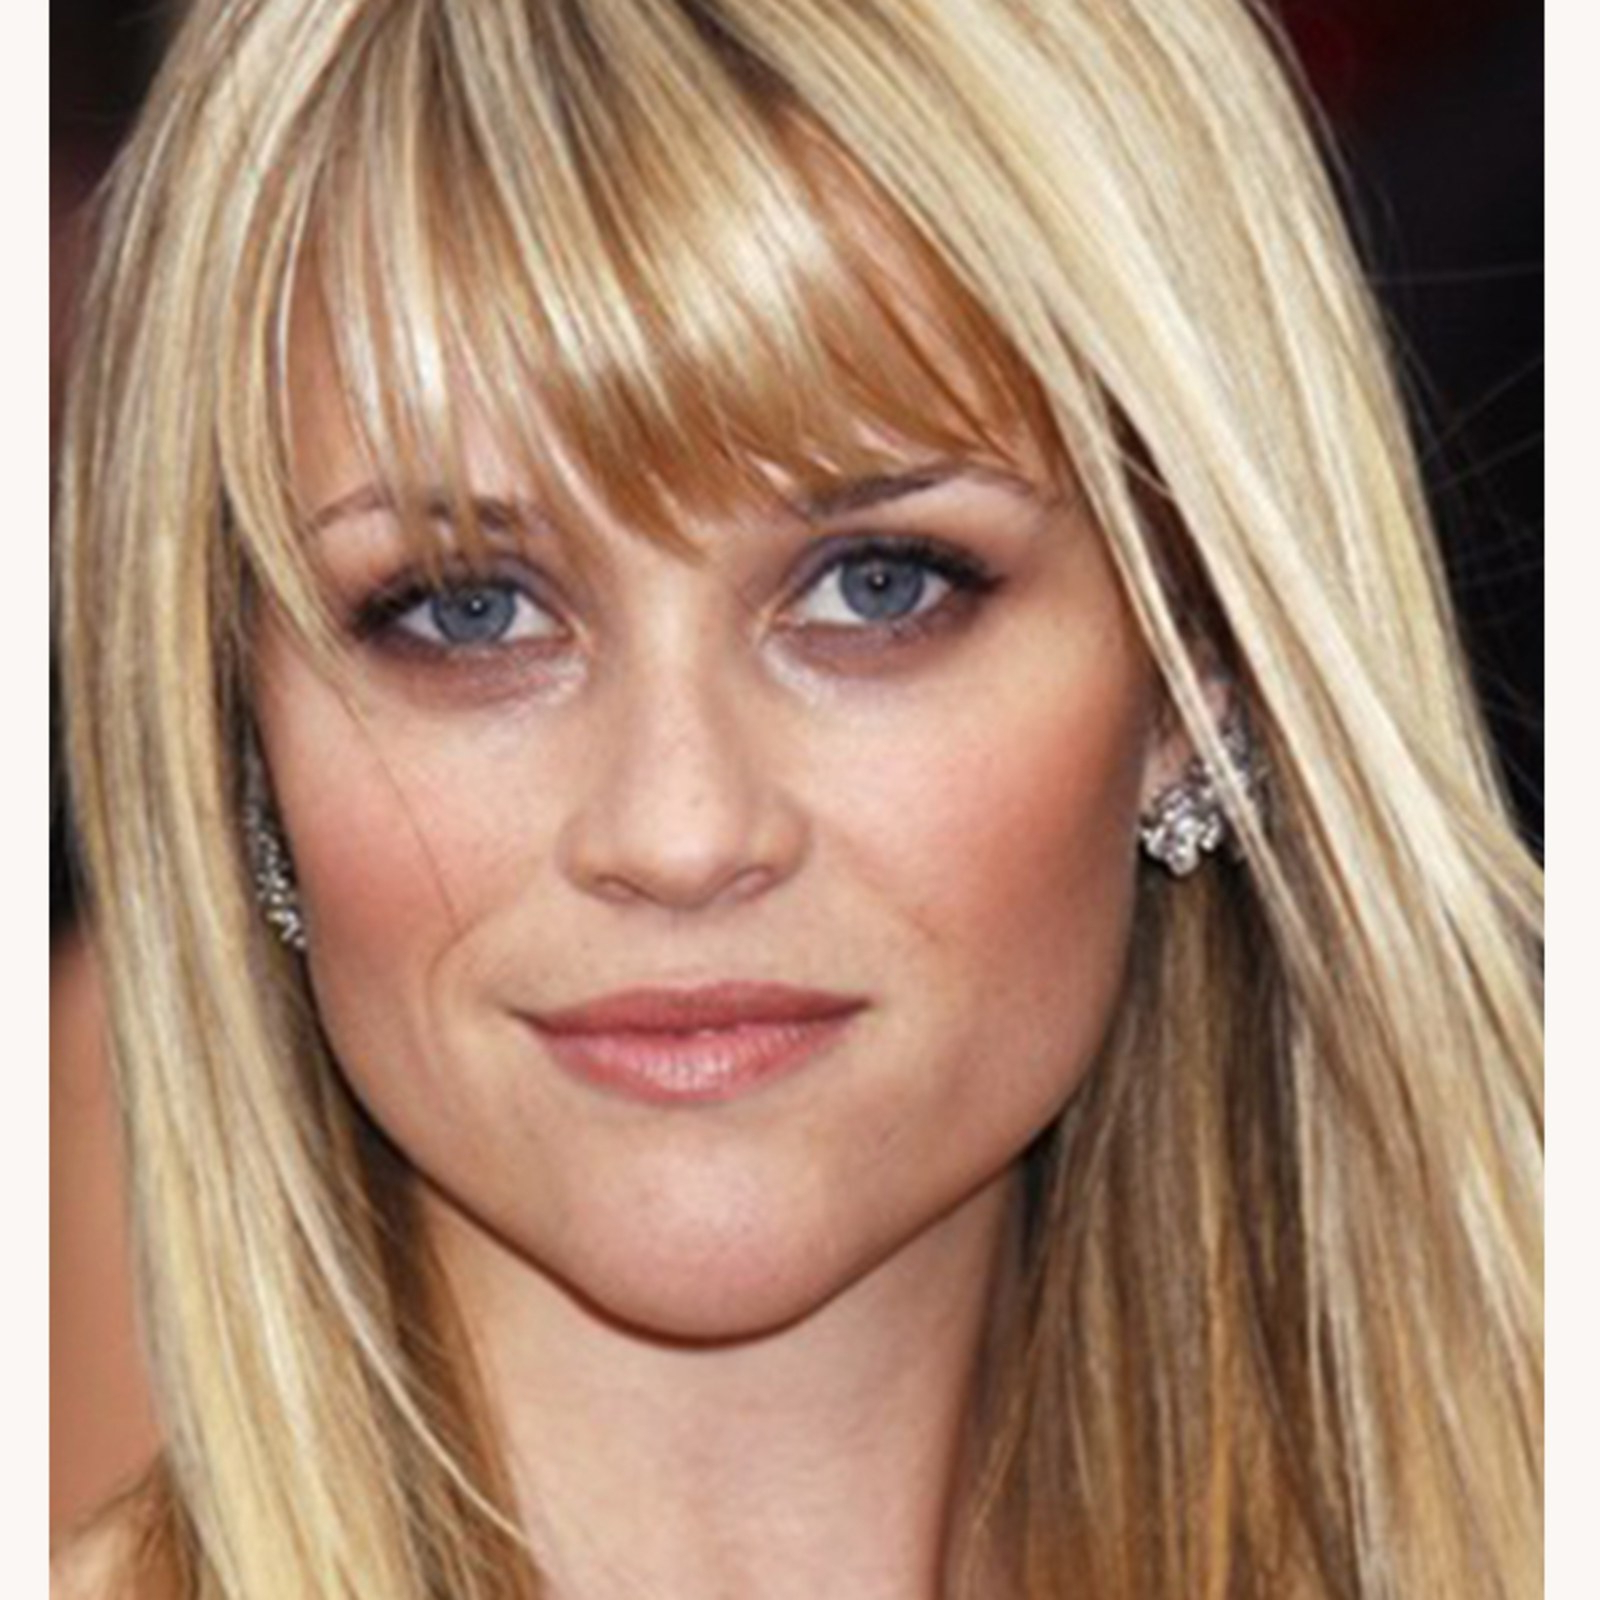 The Top 8 Haircuts For Heart Shaped Faces – Allure For Short Hairstyles For Pointy Chins (View 7 of 25)